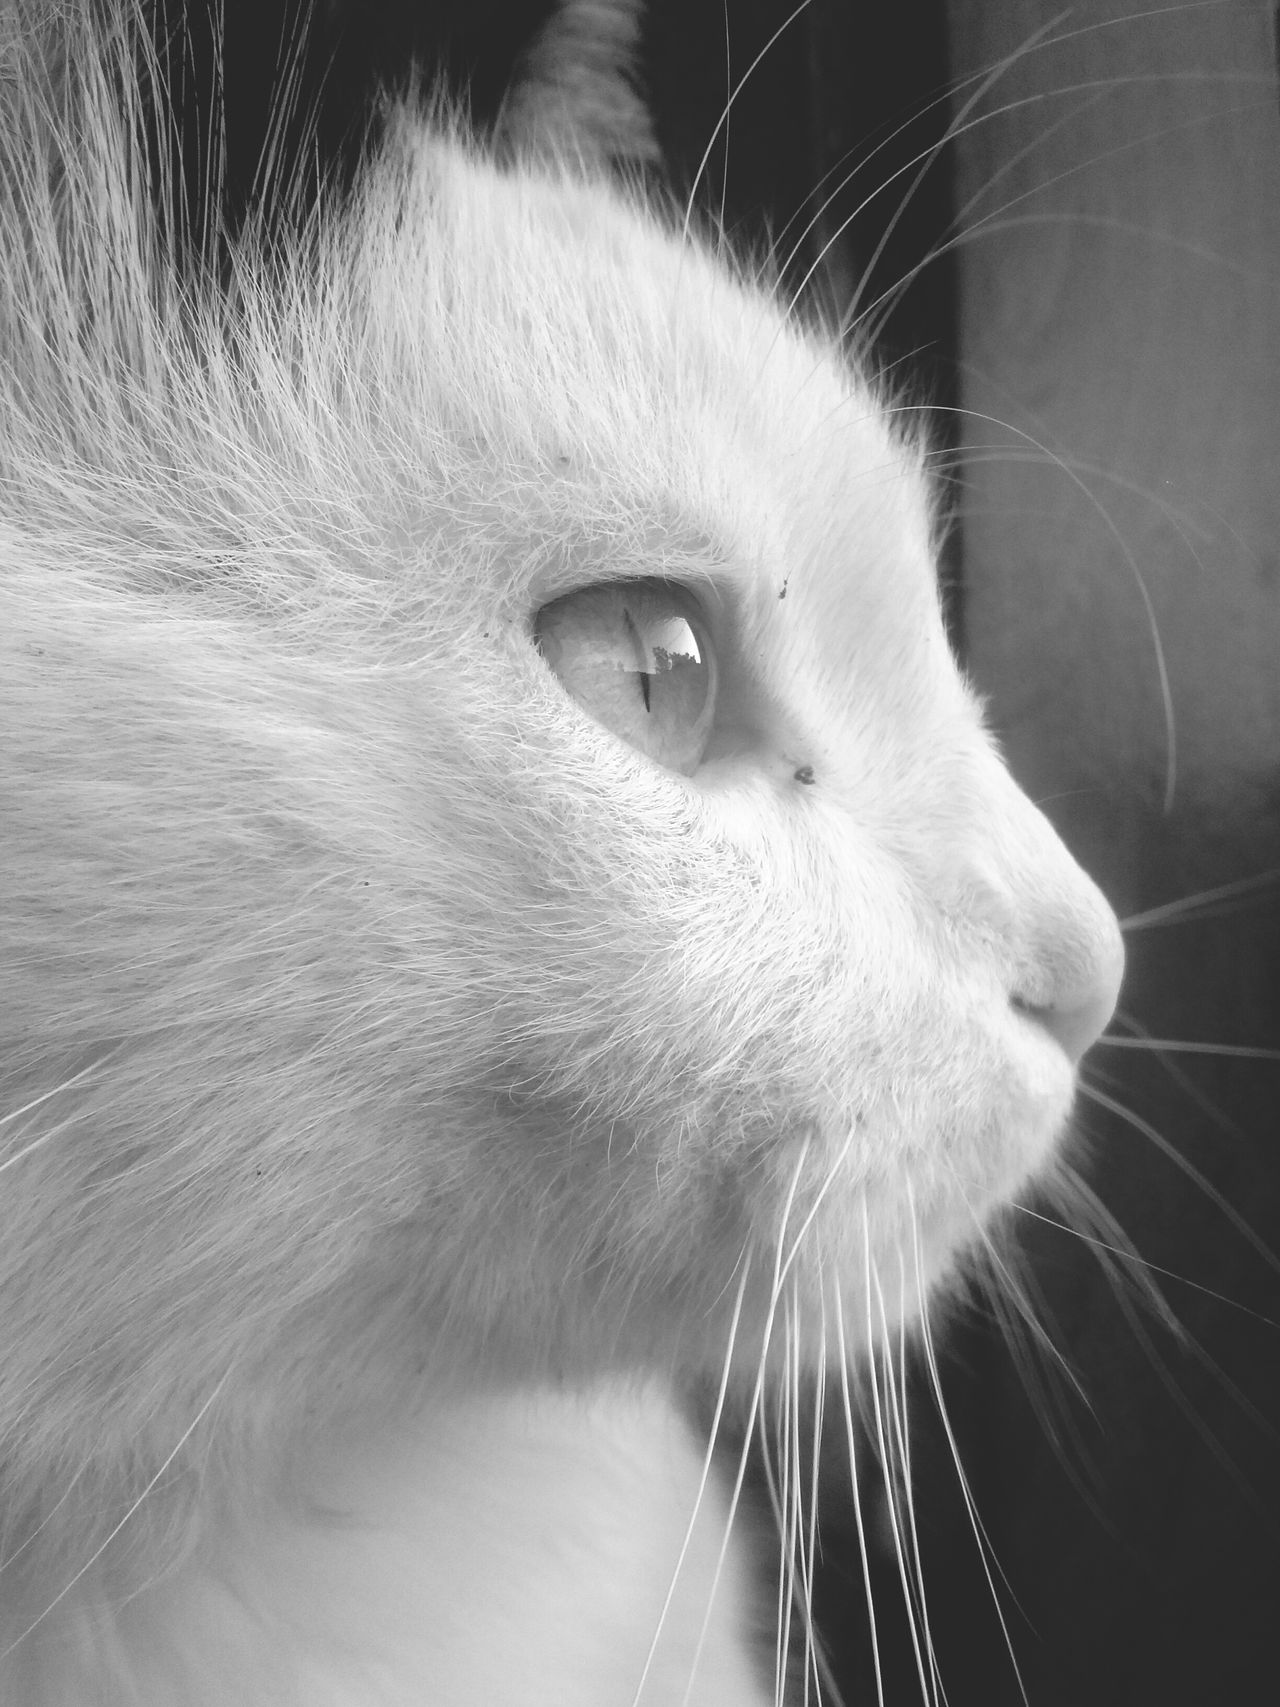 Cat Black & White Photography Face Eyes Pet Beauty Seeing The World